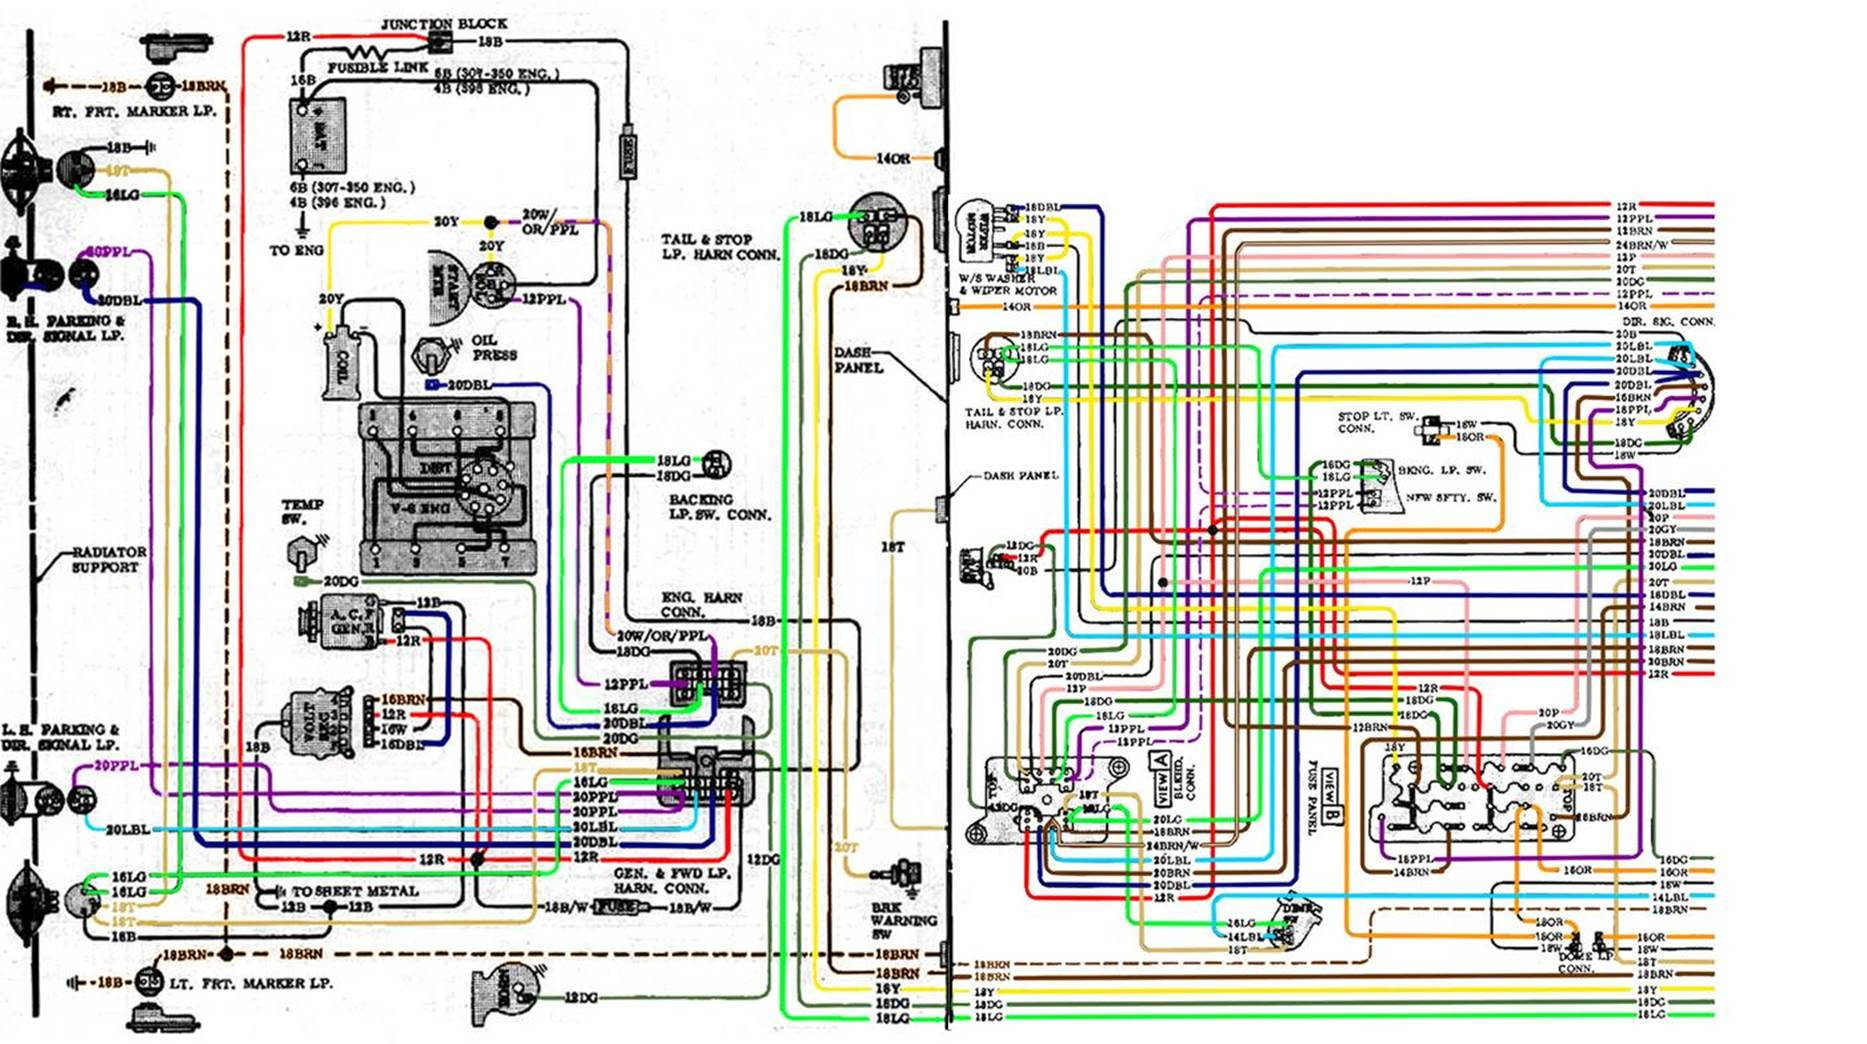 1966 Mustang Fuse Box Wiring Library Color Diagram 67 72 Chevy Rh Outintheshop Com 1970 Gto Tach 69 C10